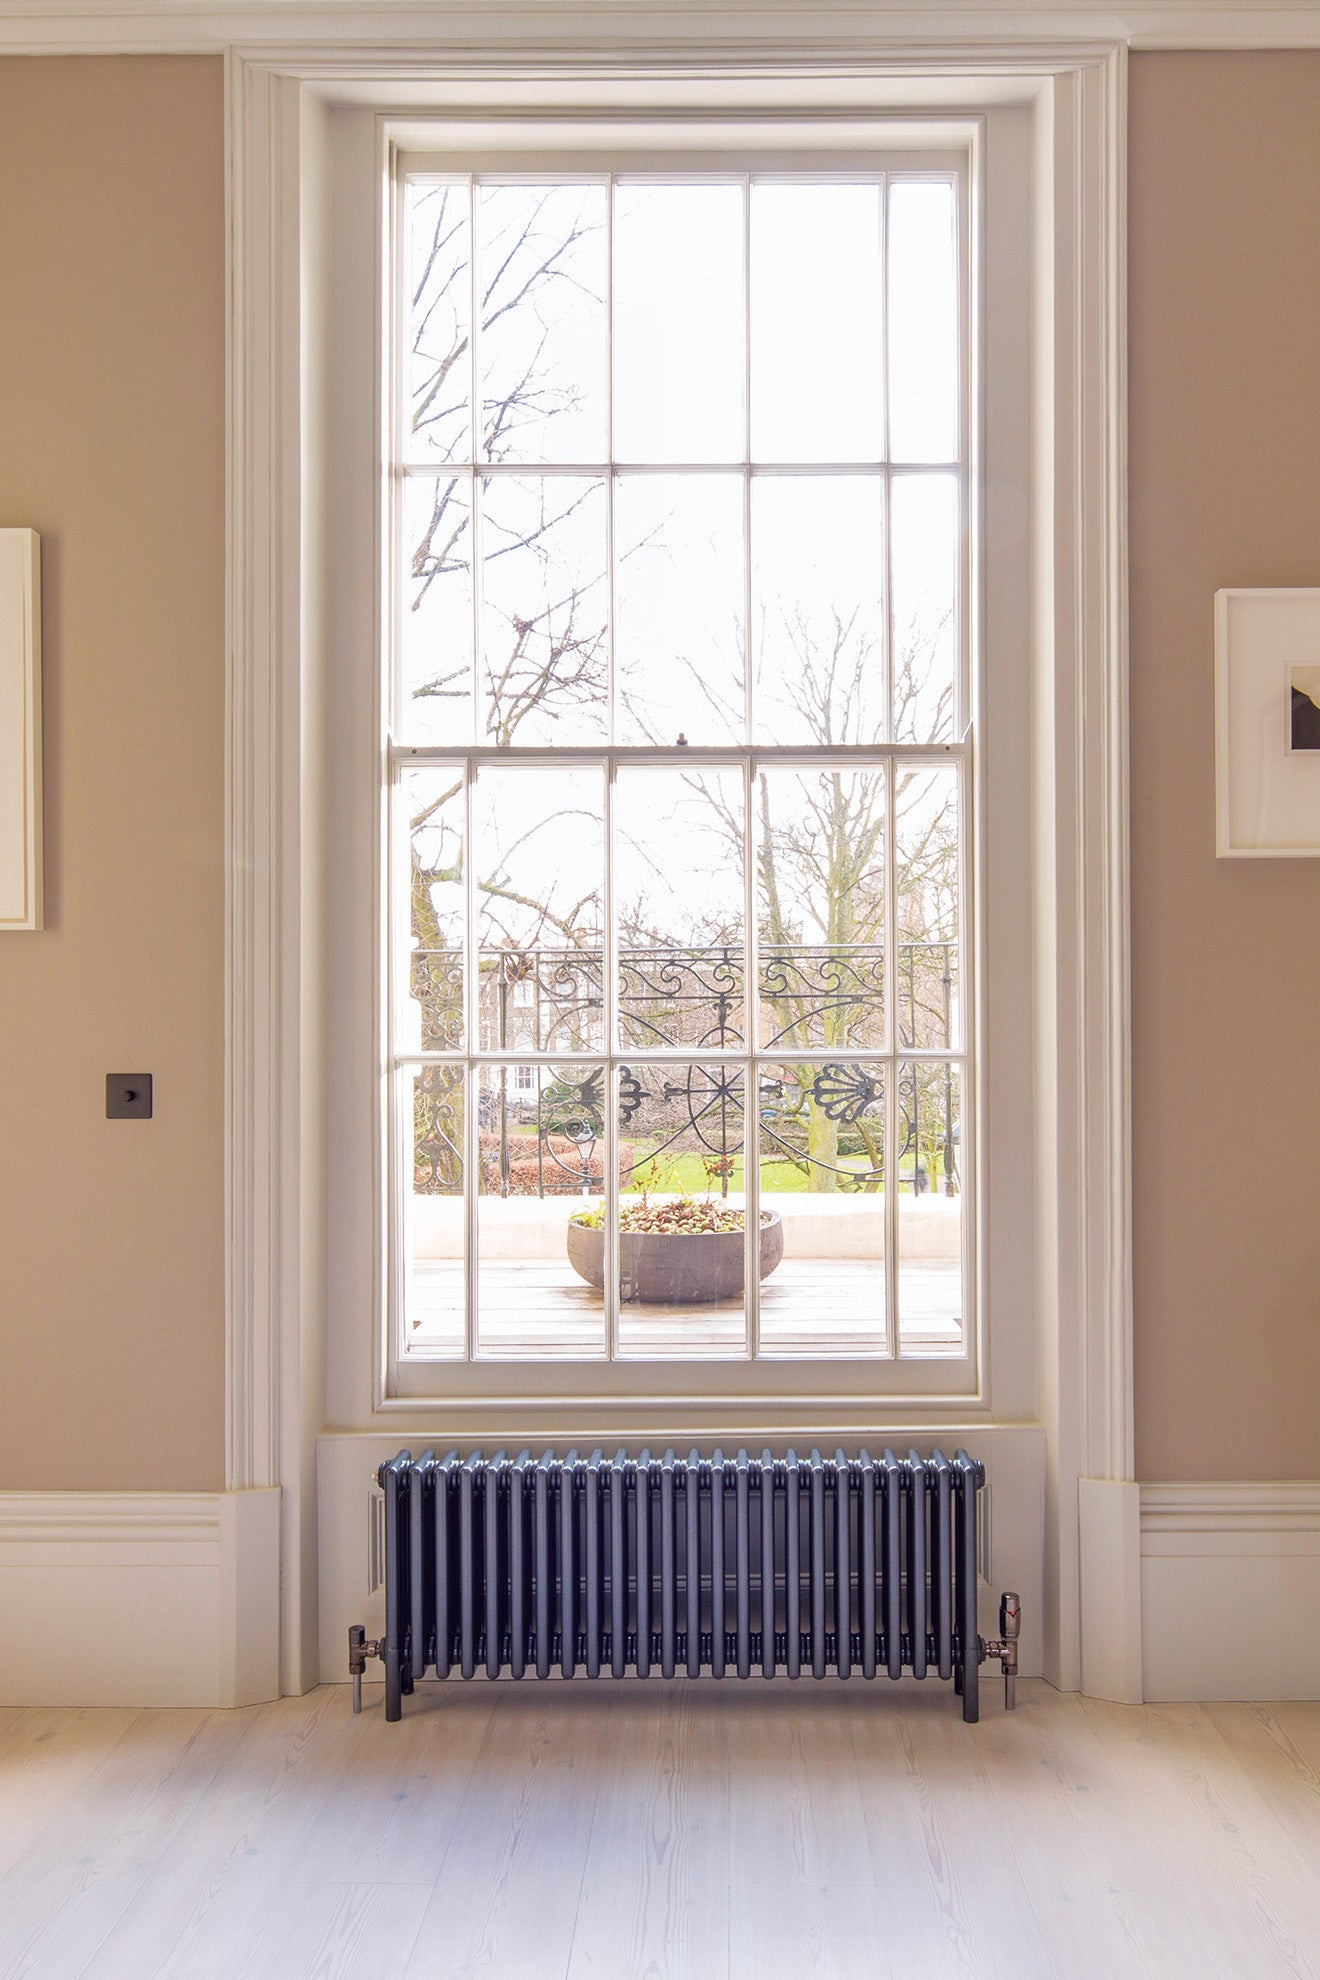 Bisque radiators make the radiator a feature to the home for Household radiator design